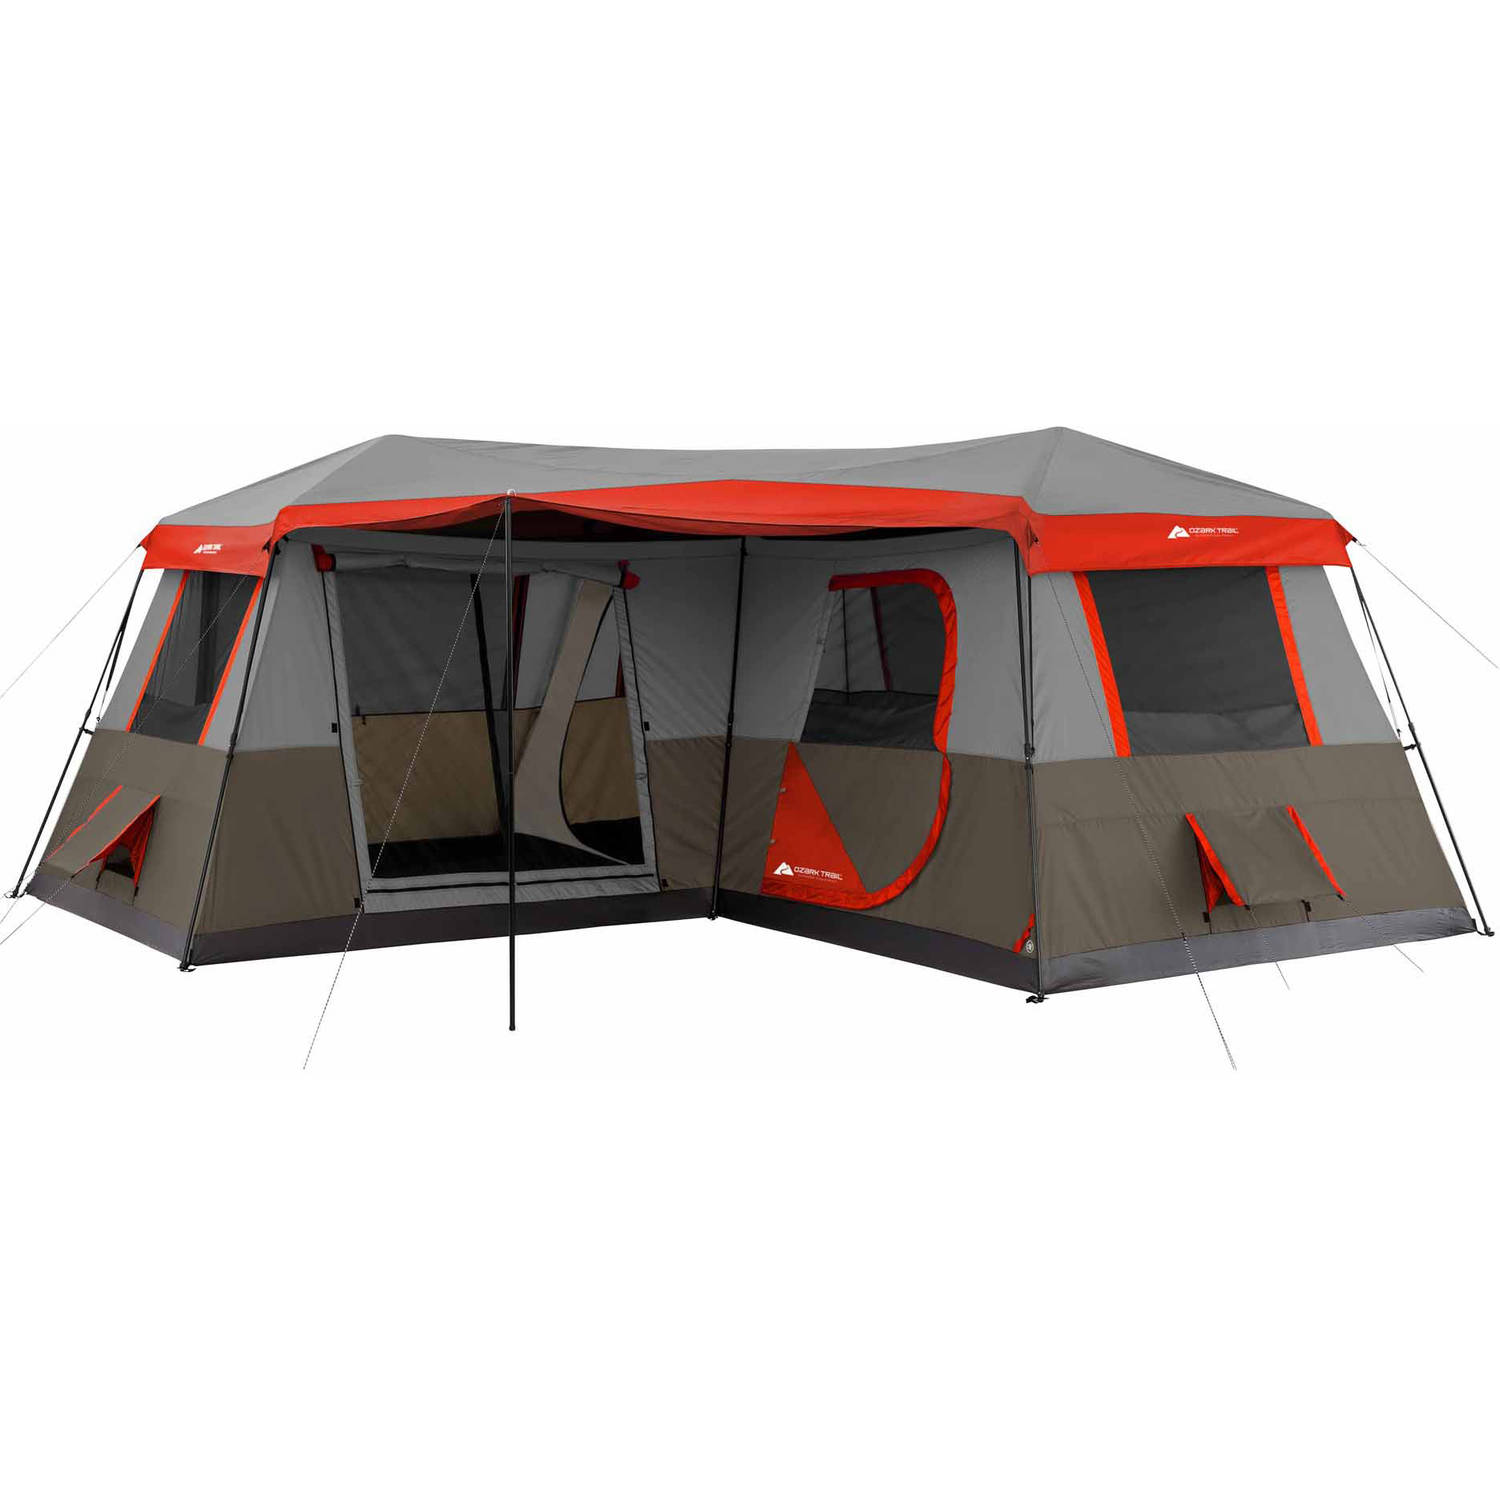 Ozark Trail 16x16 Instant Cabin Tent Sleeps 12  sc 1 st  Walmart : lake and trail tents - memphite.com